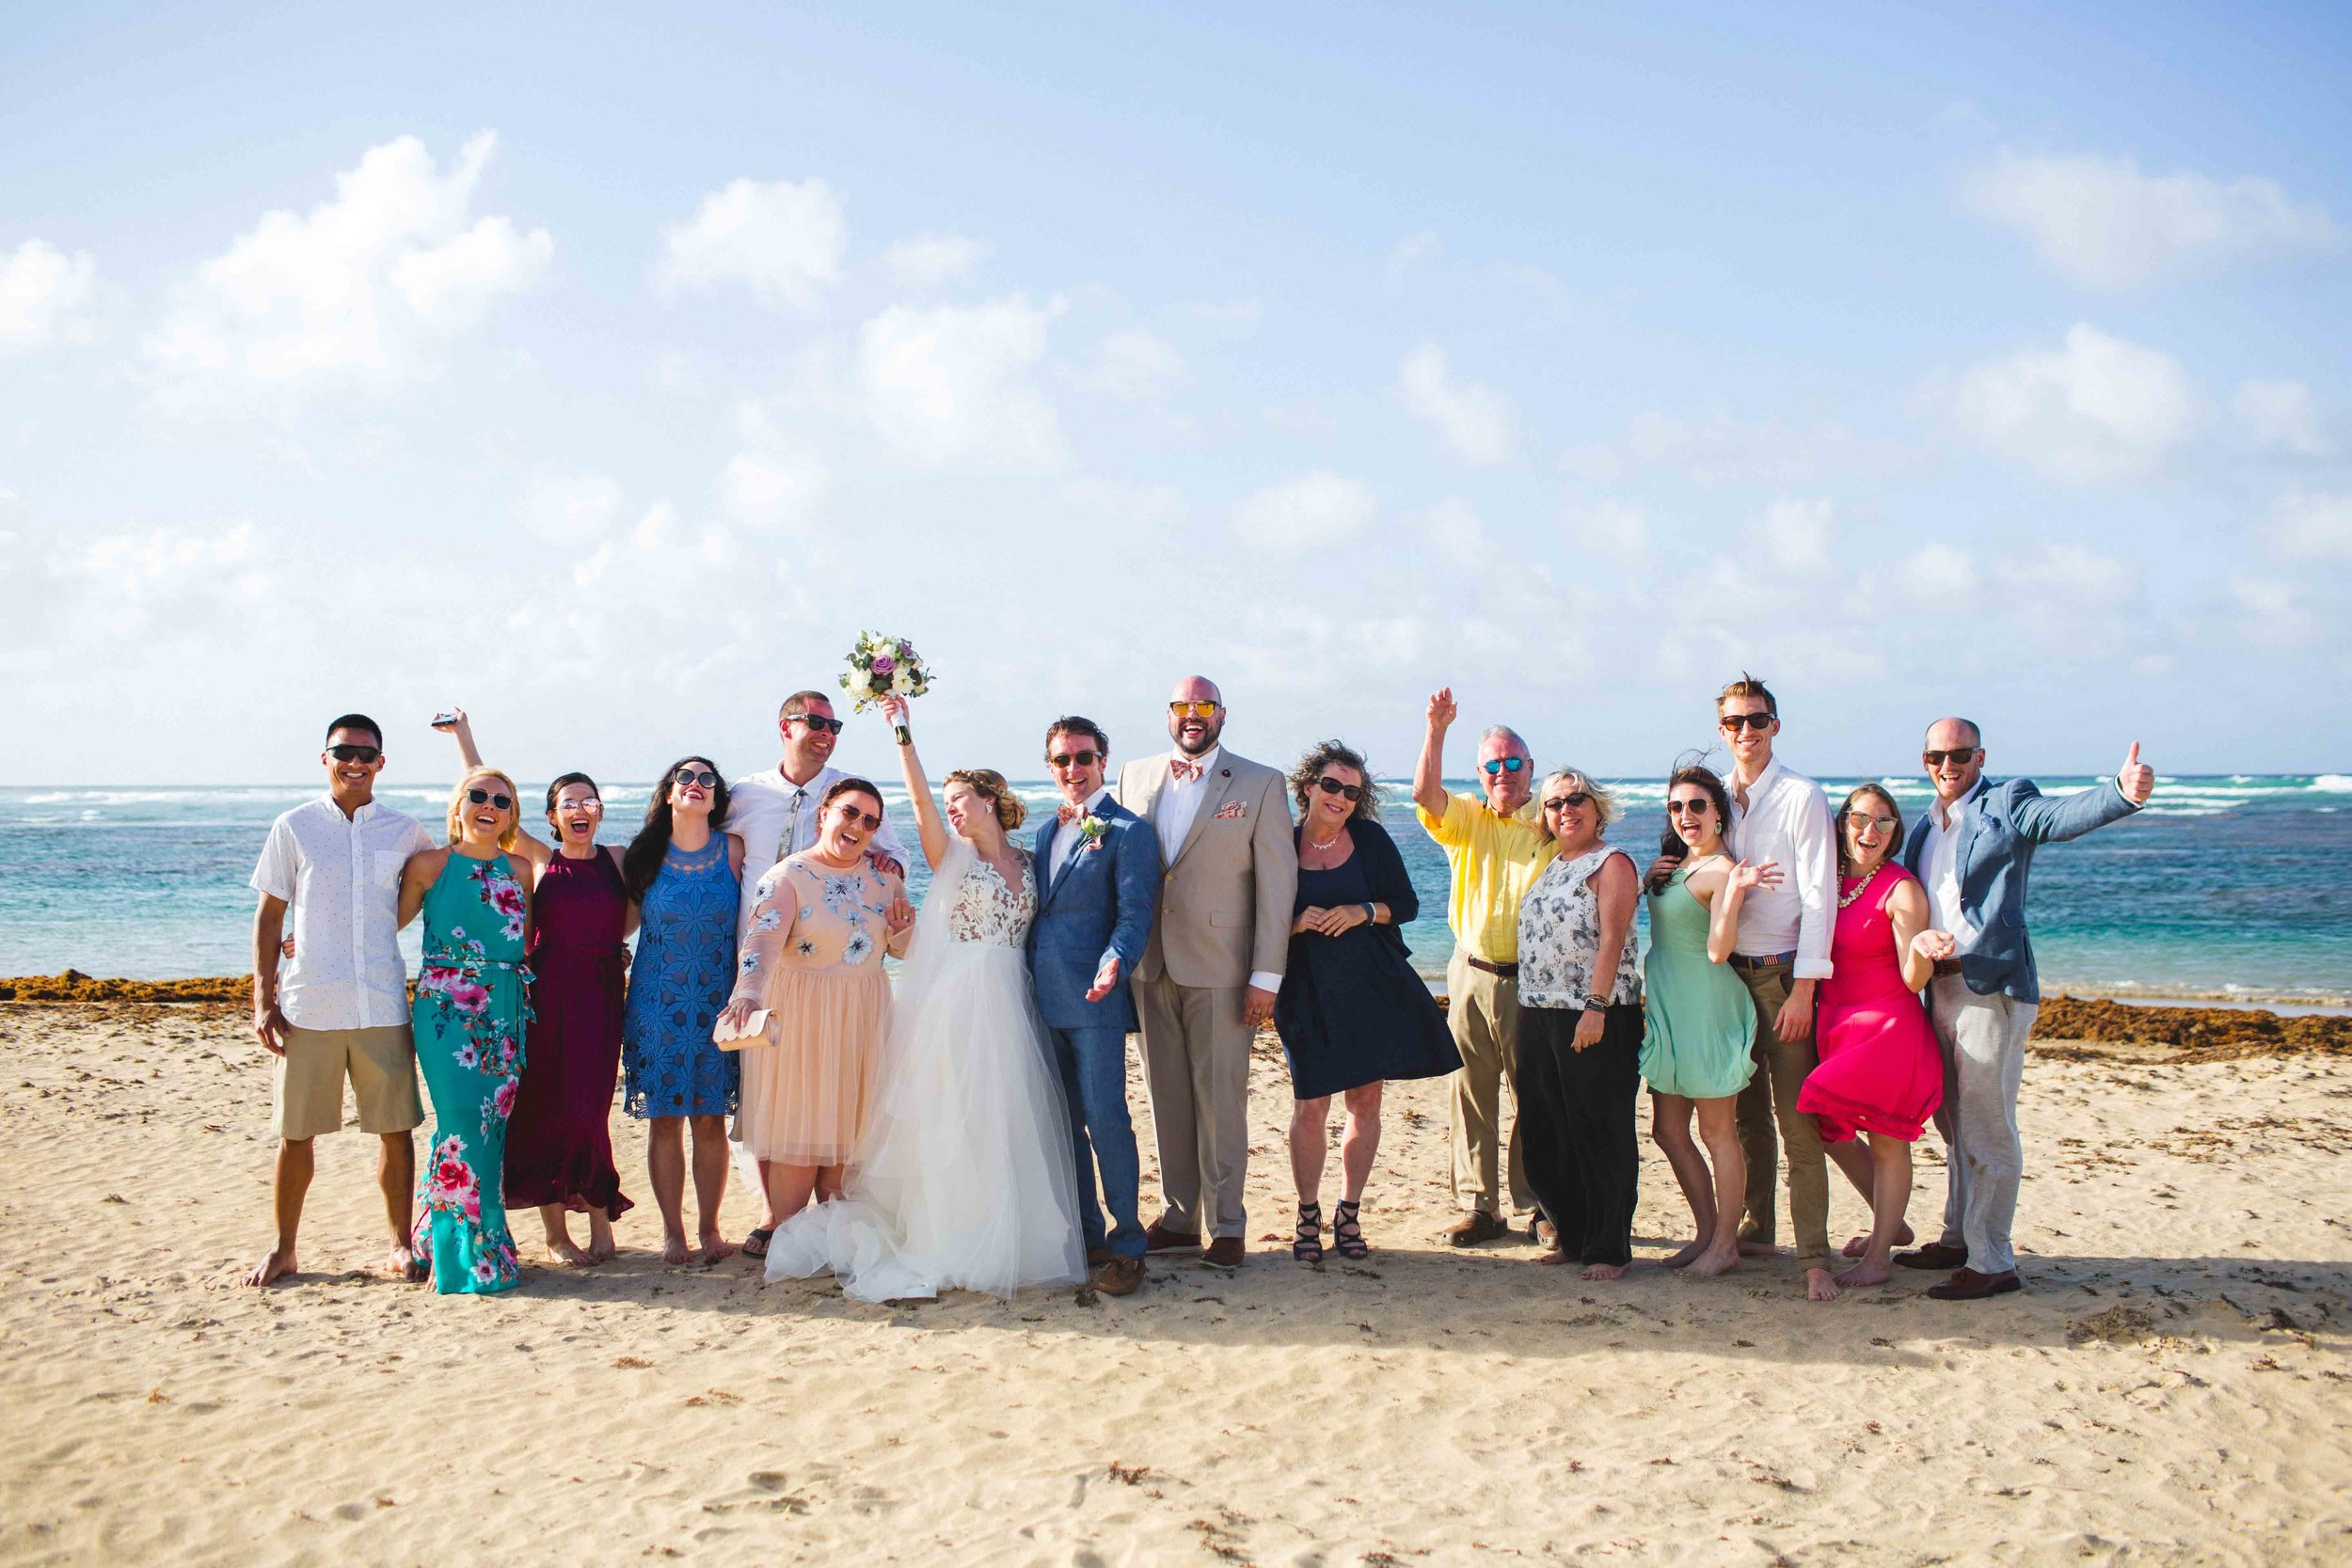 punta-cana-dominican-republic-wedding-photographer-98.jpg